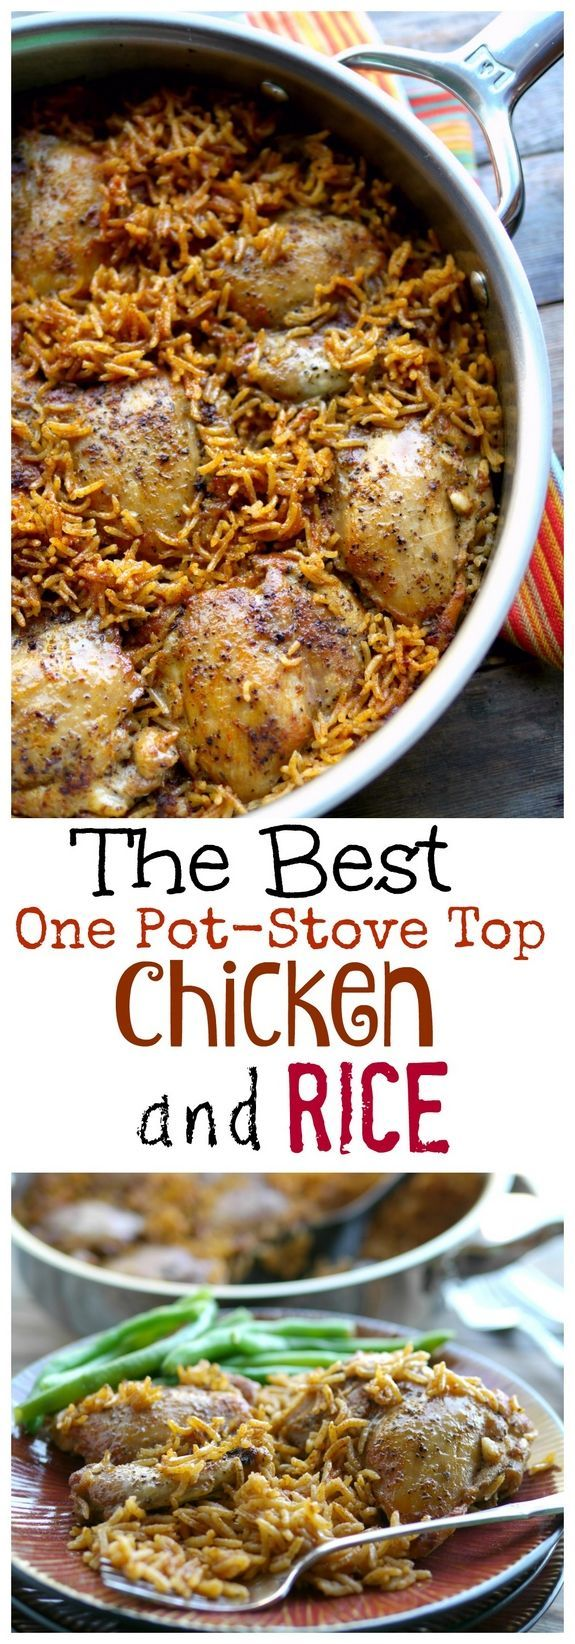 The Best One Pot Stove Top Chicken and Rice